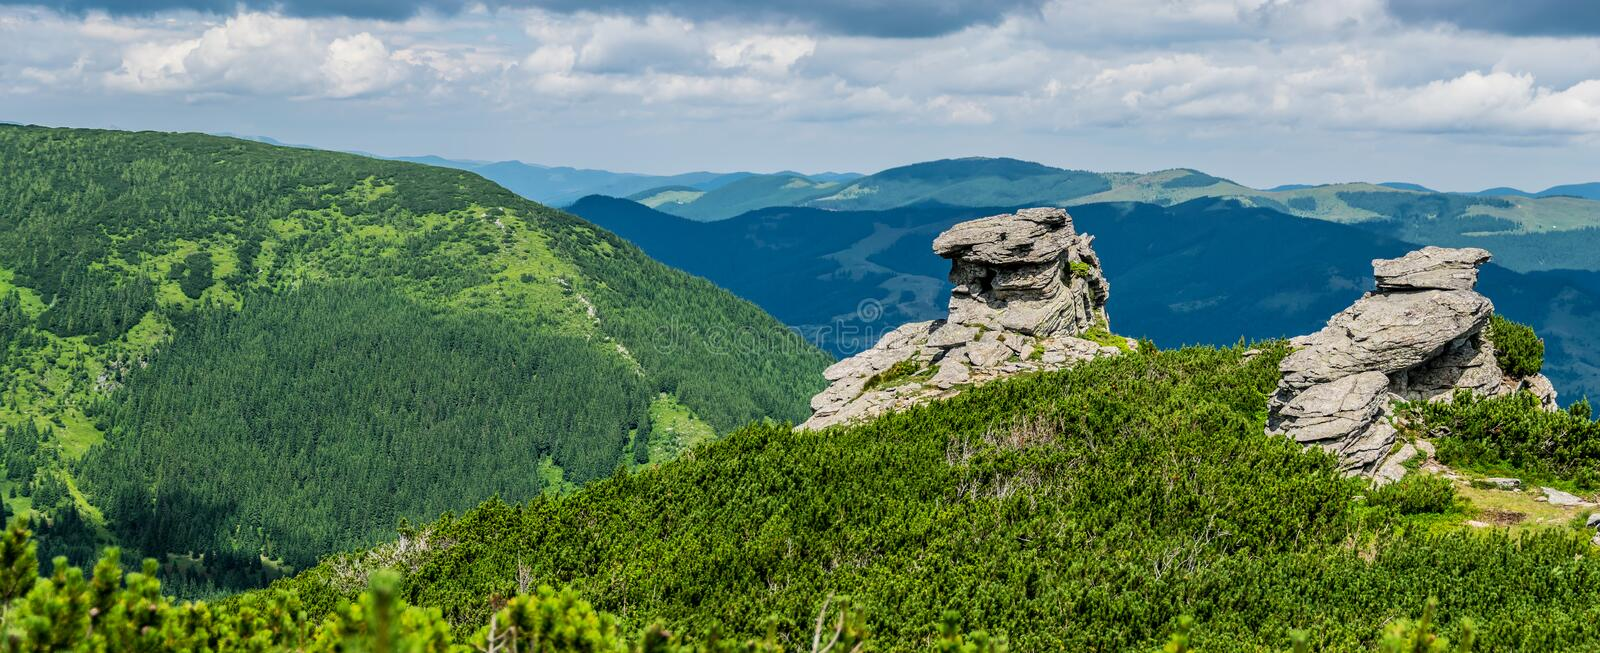 Rocks and green mountains royalty free stock photography